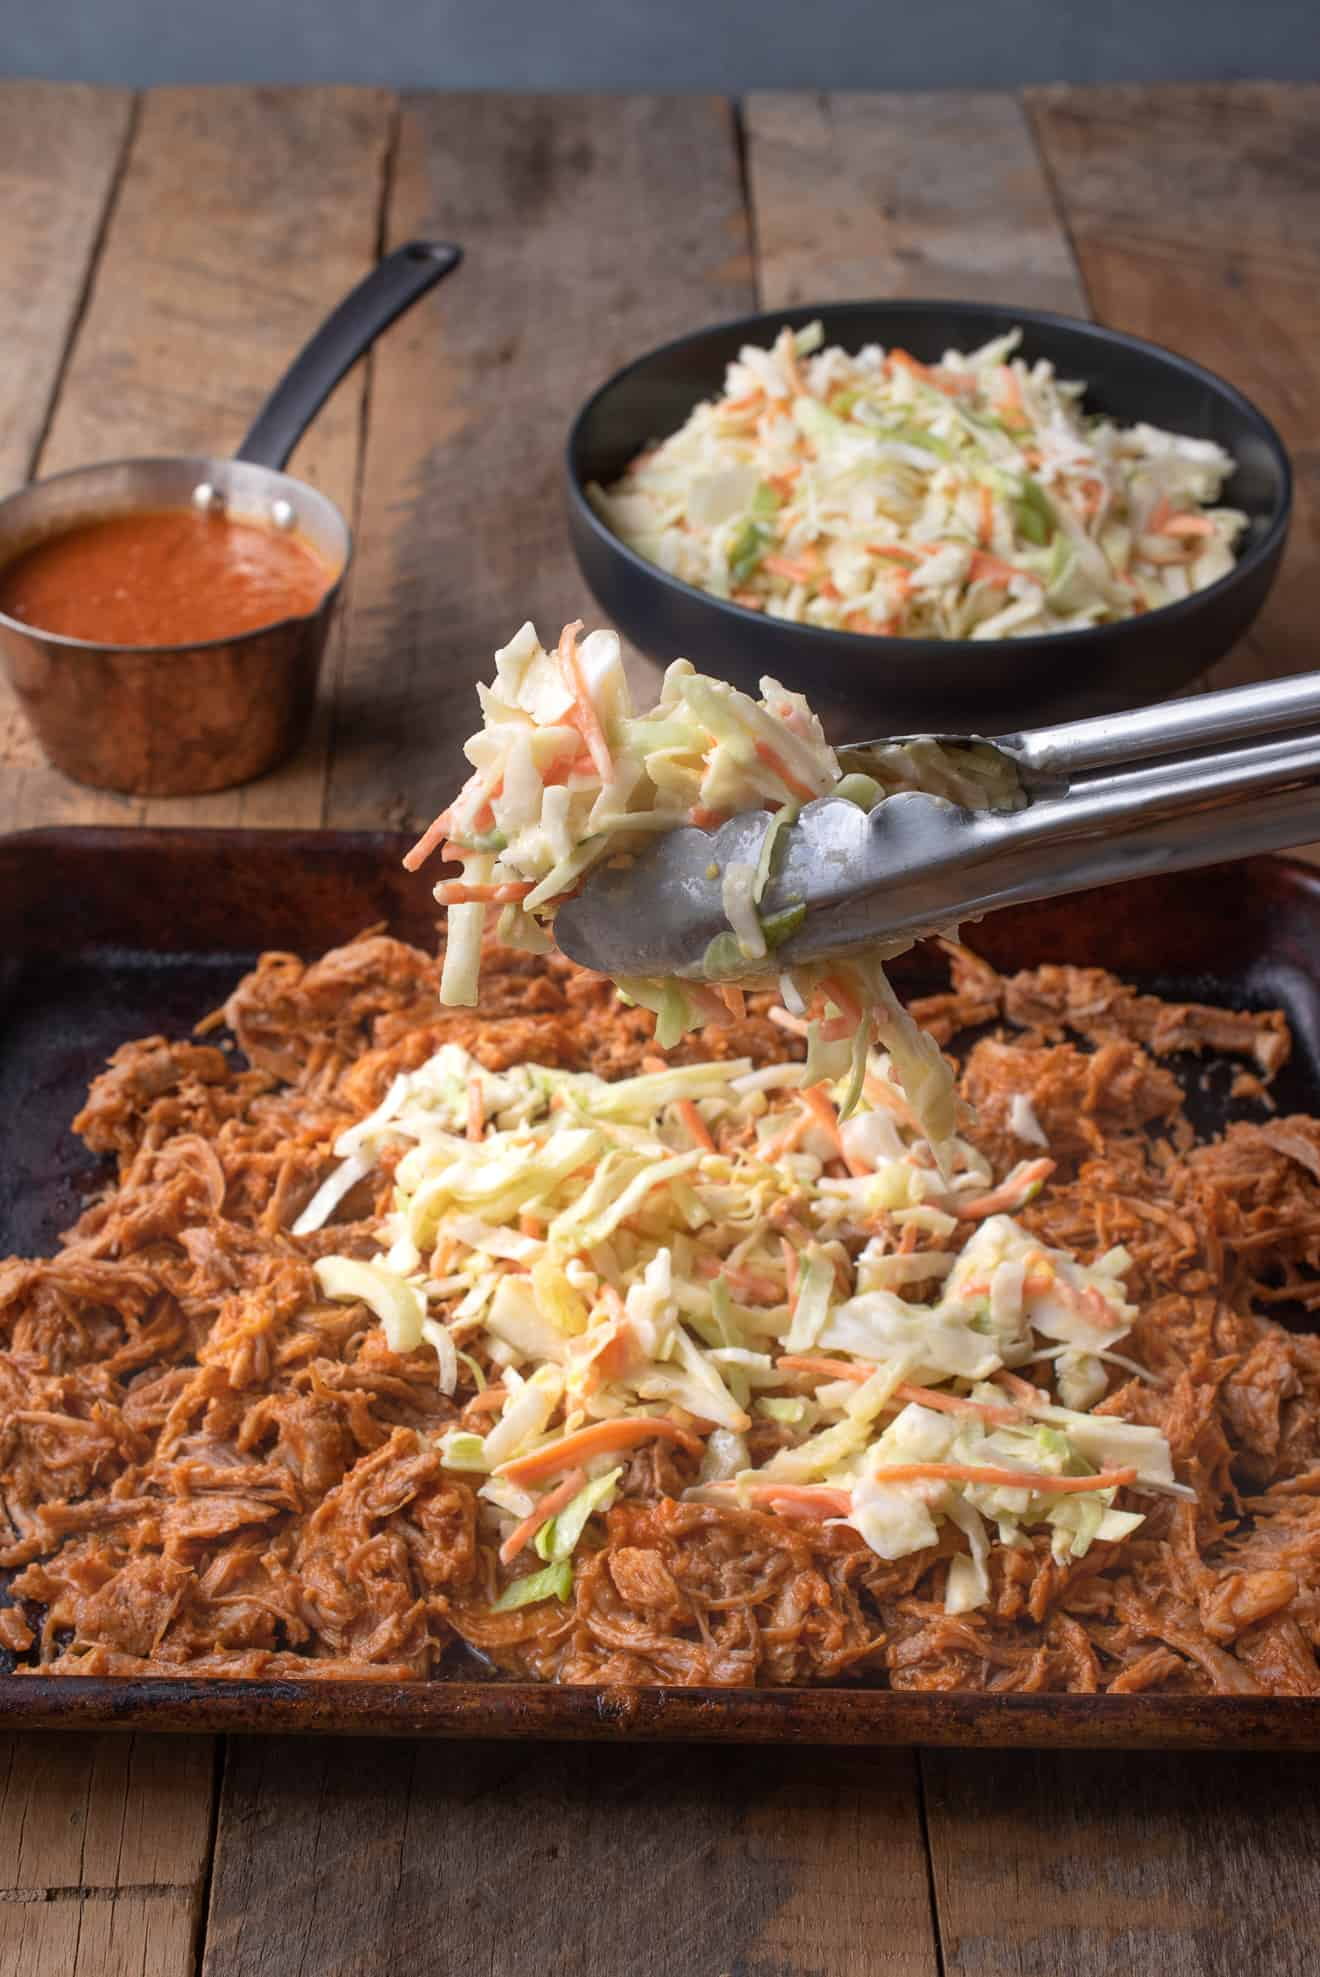 Topping a tray of pulled pork with crunch vegetable coleslaw